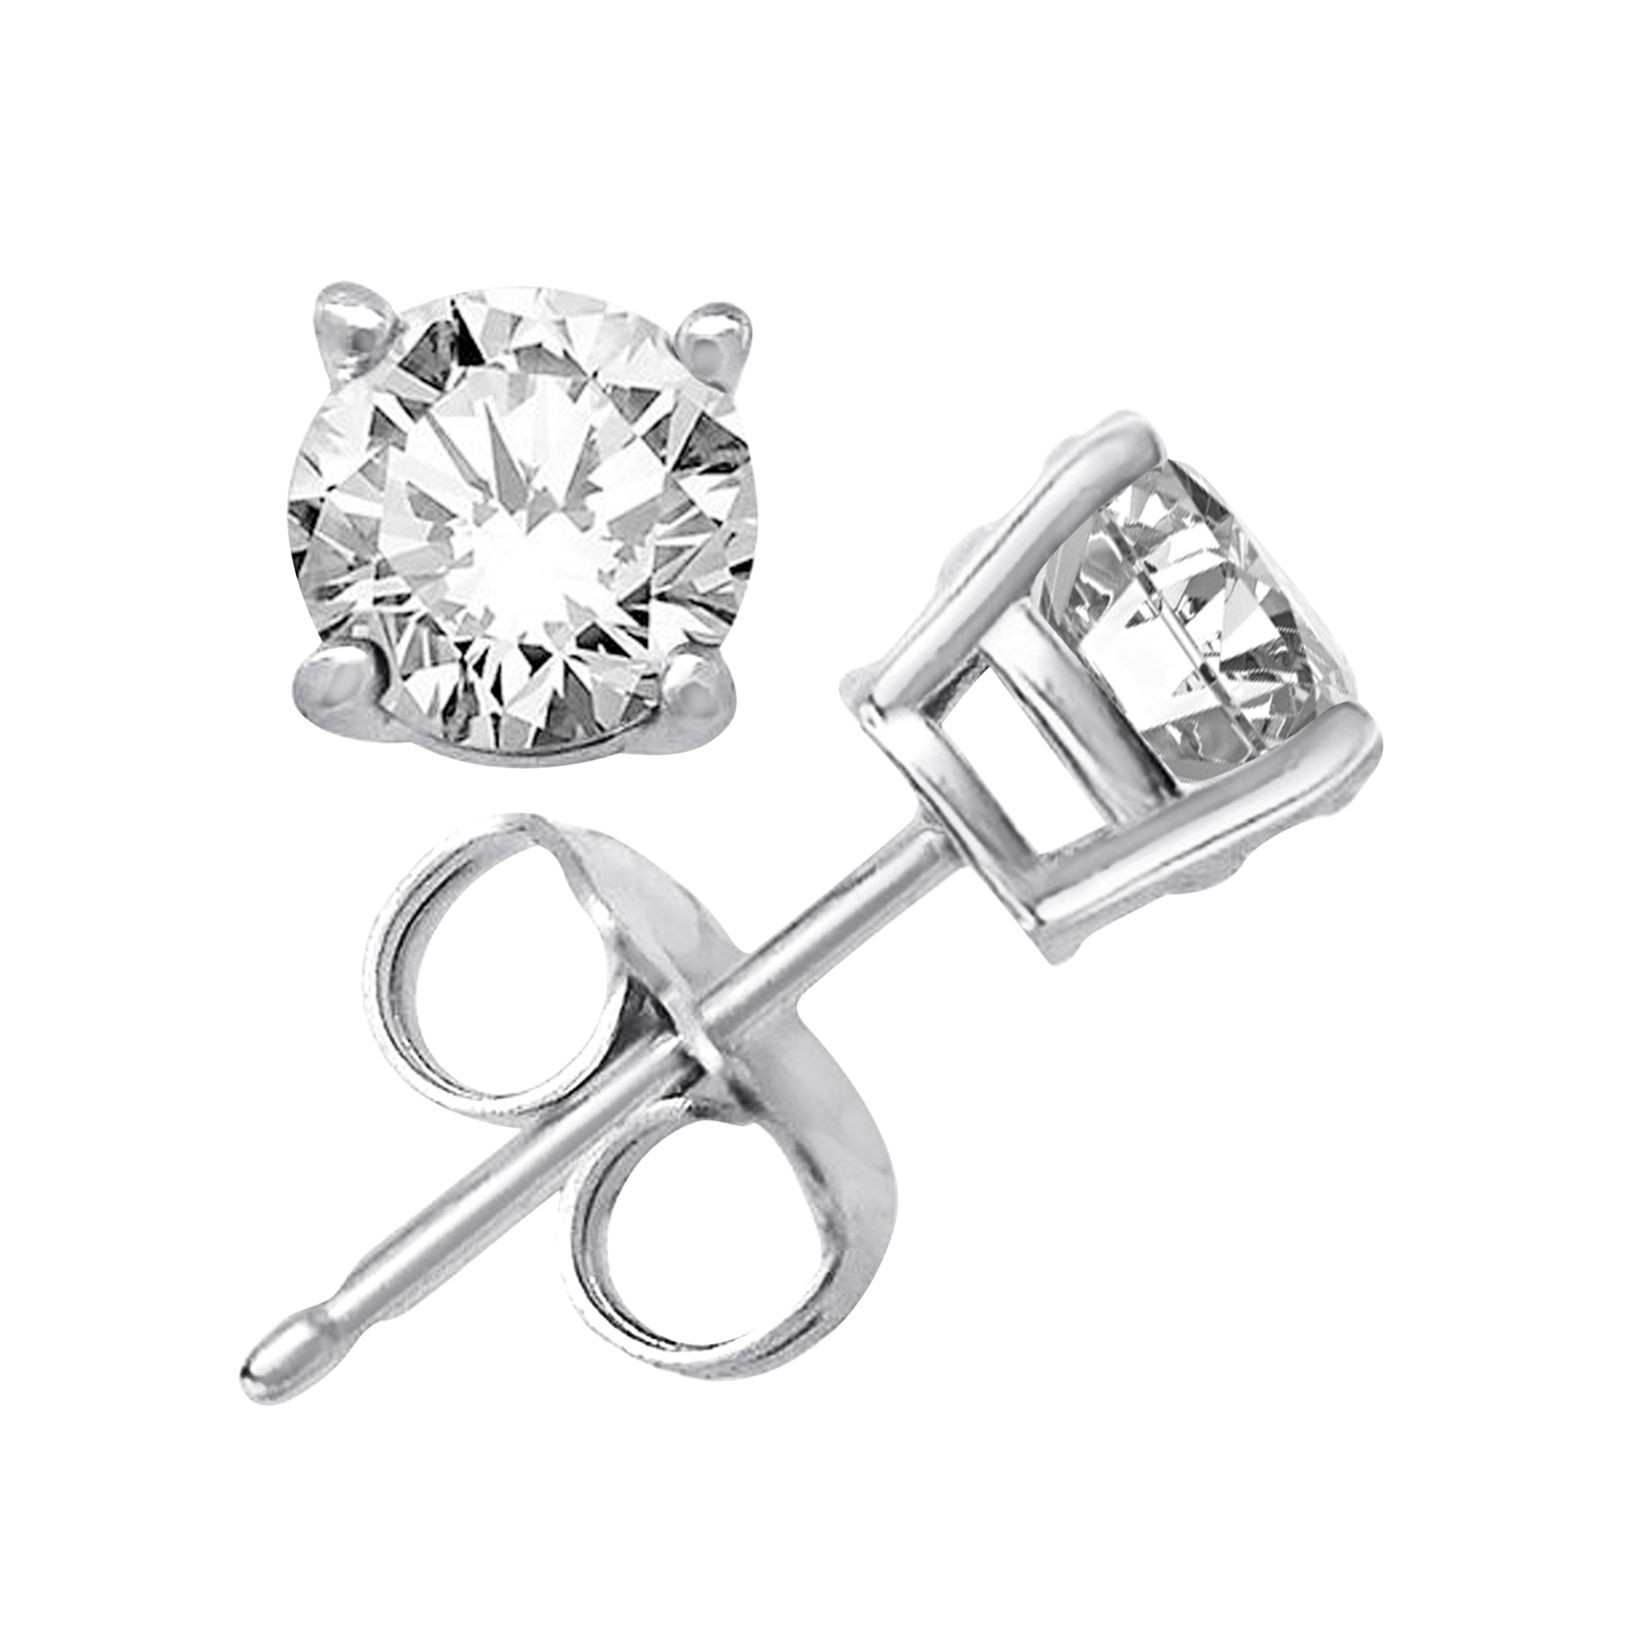 2ctw_Simulated_Diamond_Sterling_Silver_Stud_Earrings